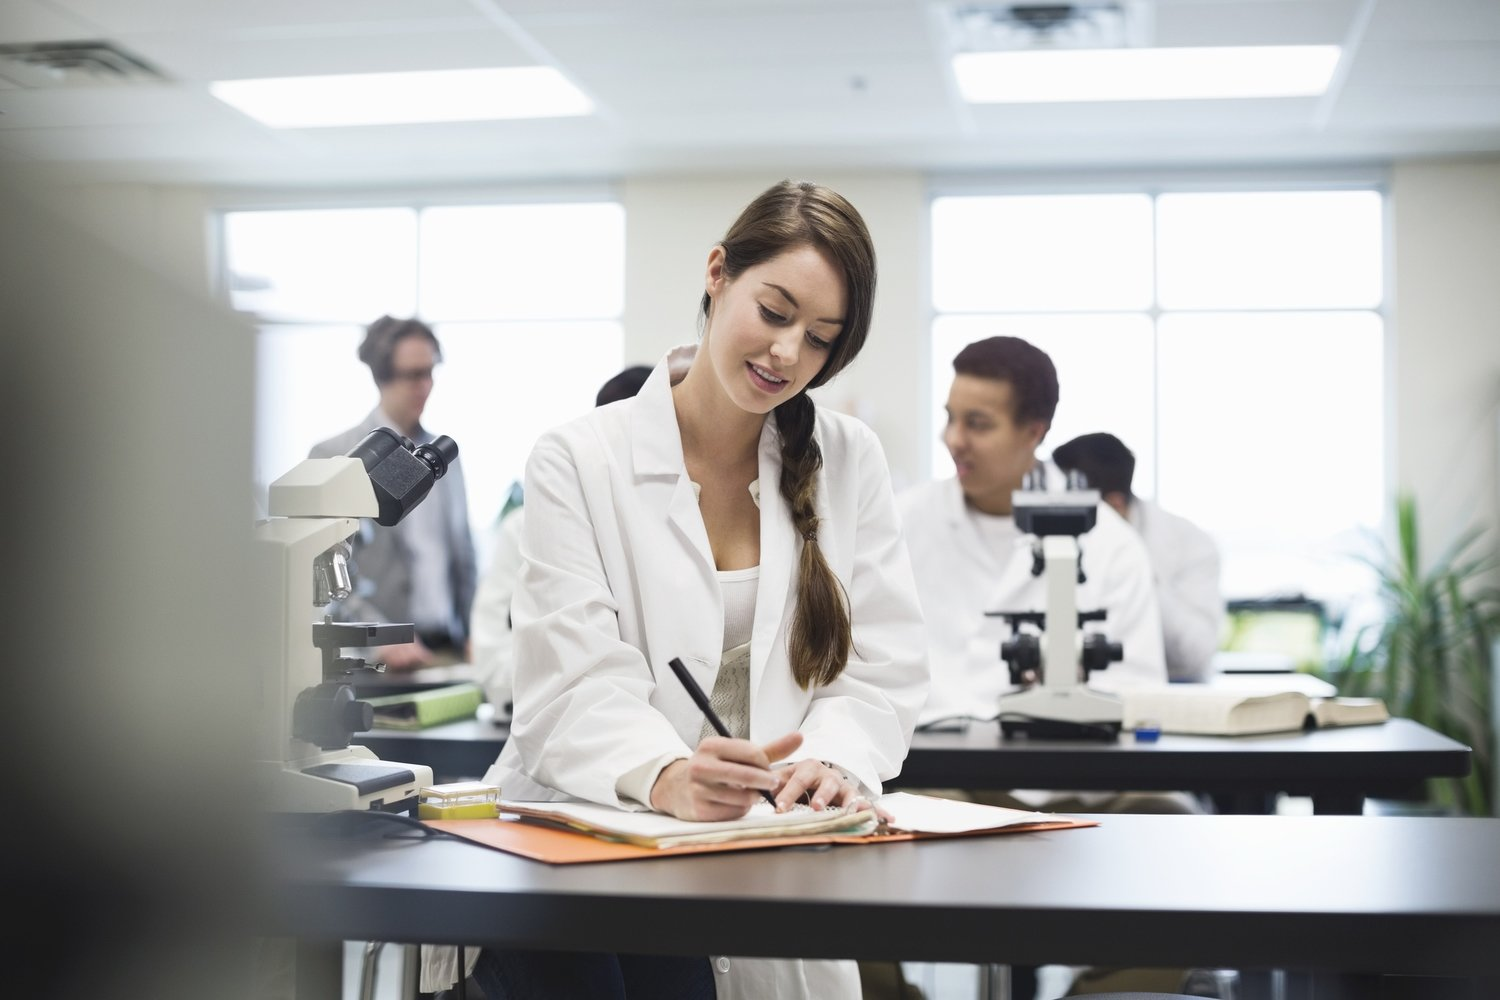 Locum Tenens Contract Review for Practicing Physicians